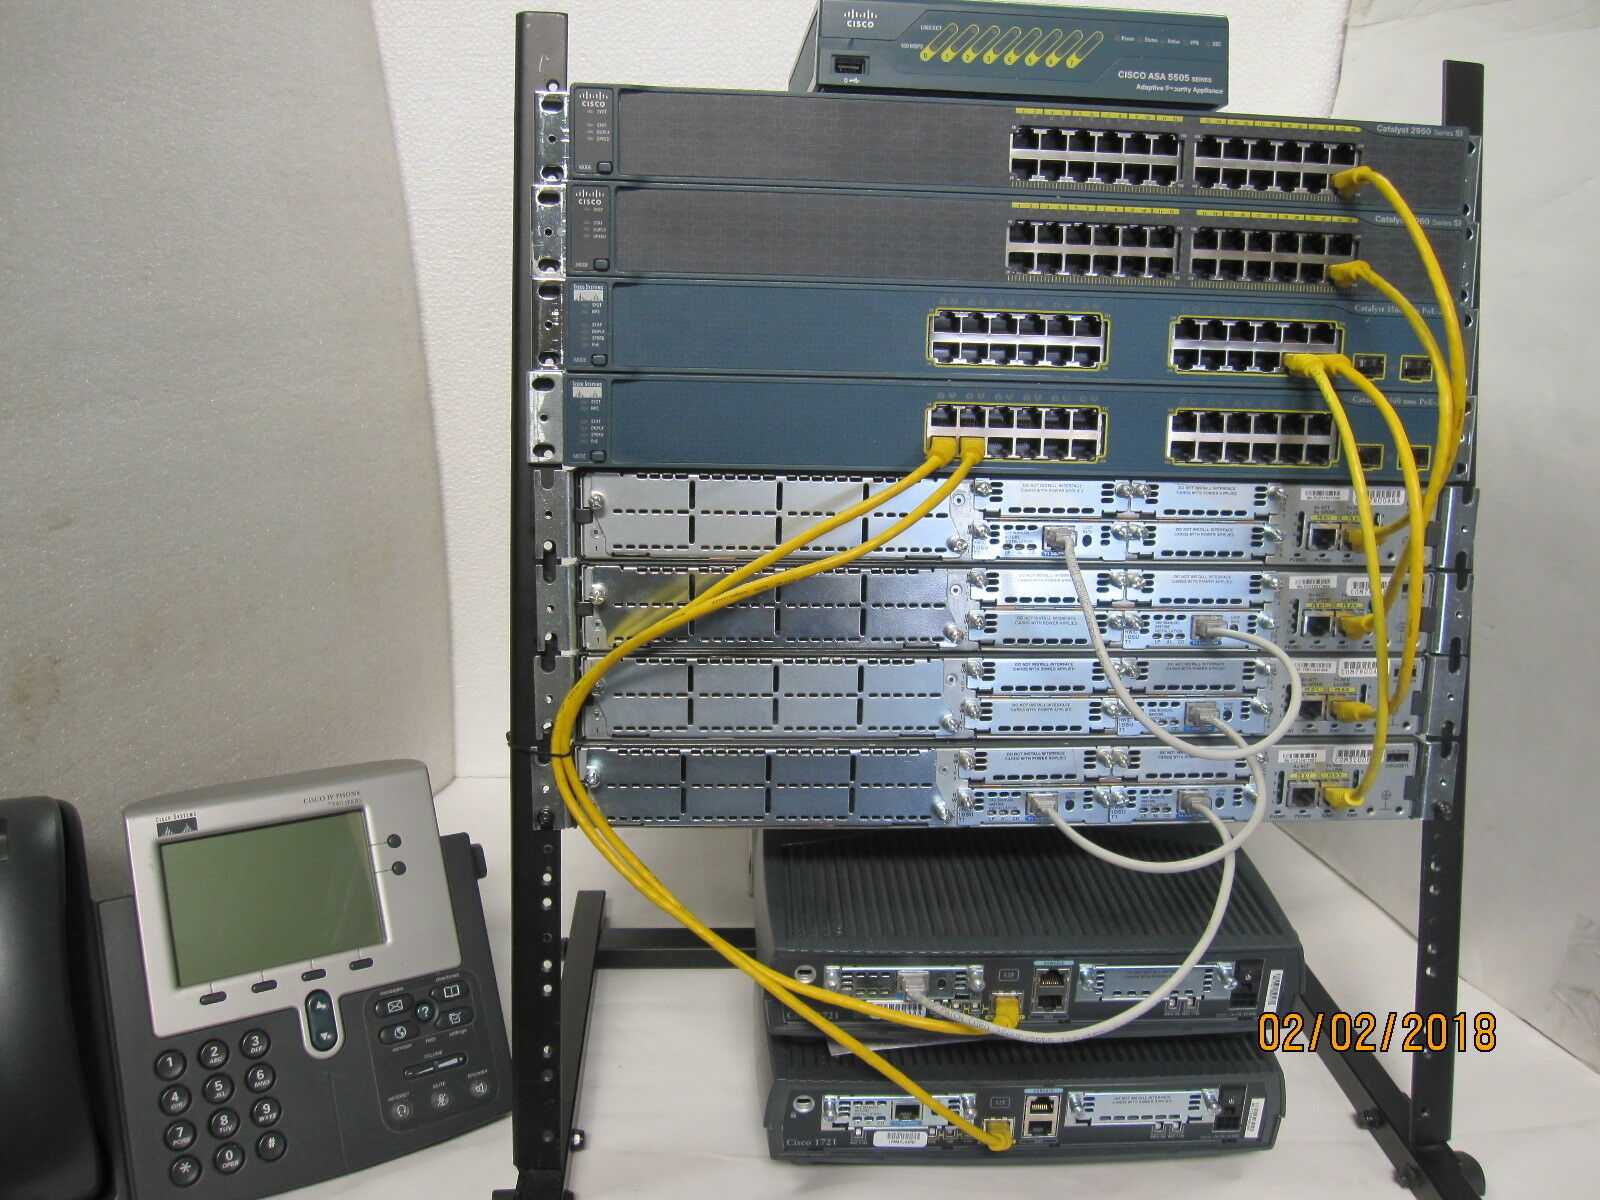 How To Configure Intervlan Routing On Layer 3 Switches Cisco 1 Ebay Seller 200 125 Ccna Ccnp Security Lab Kit Asa5505